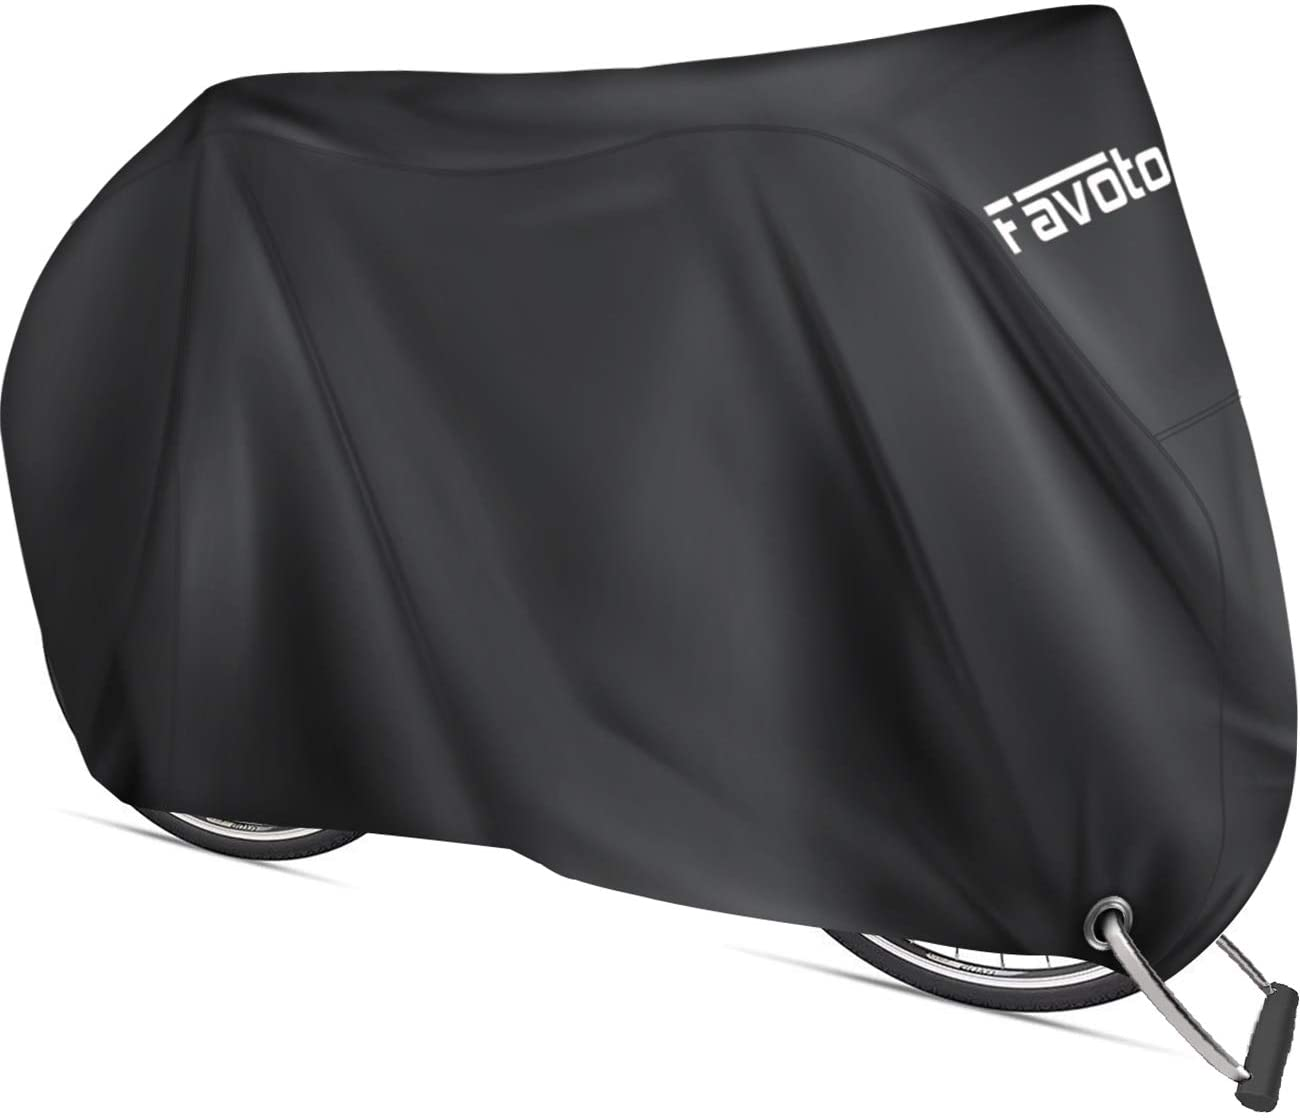 favoto bike cover black color isolated on white background